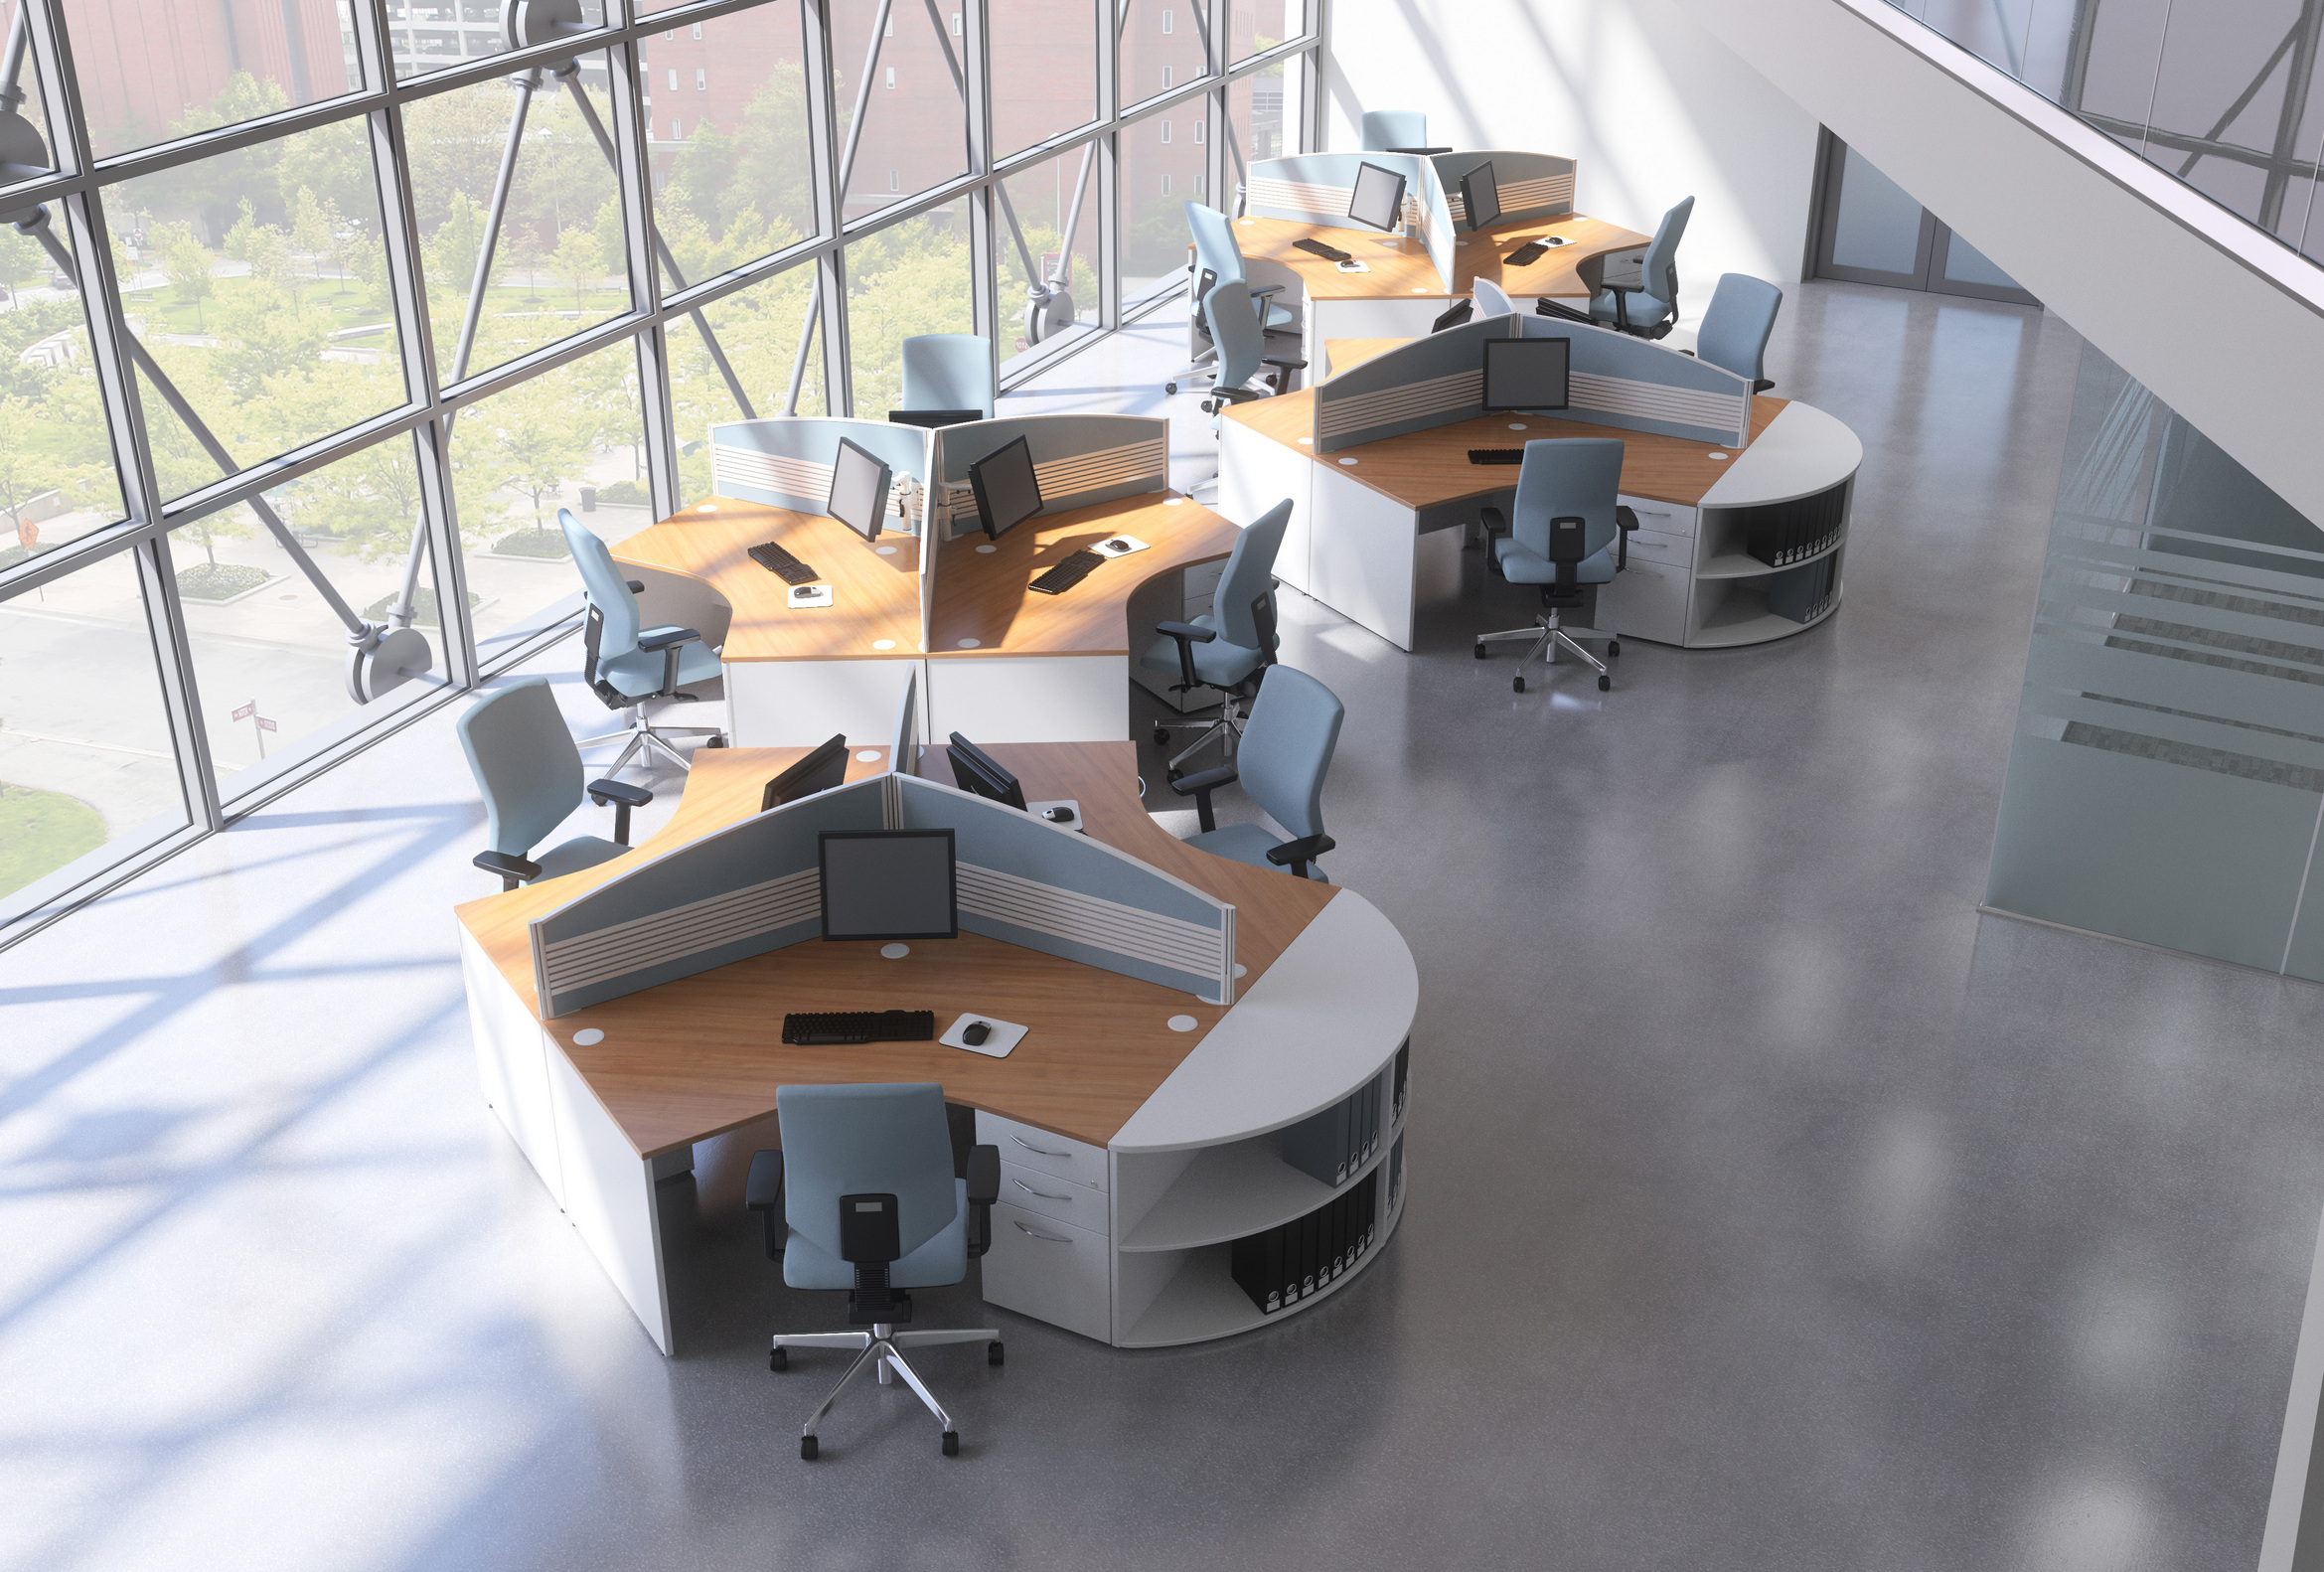 Drawn office workstation Office Space Open Your Office